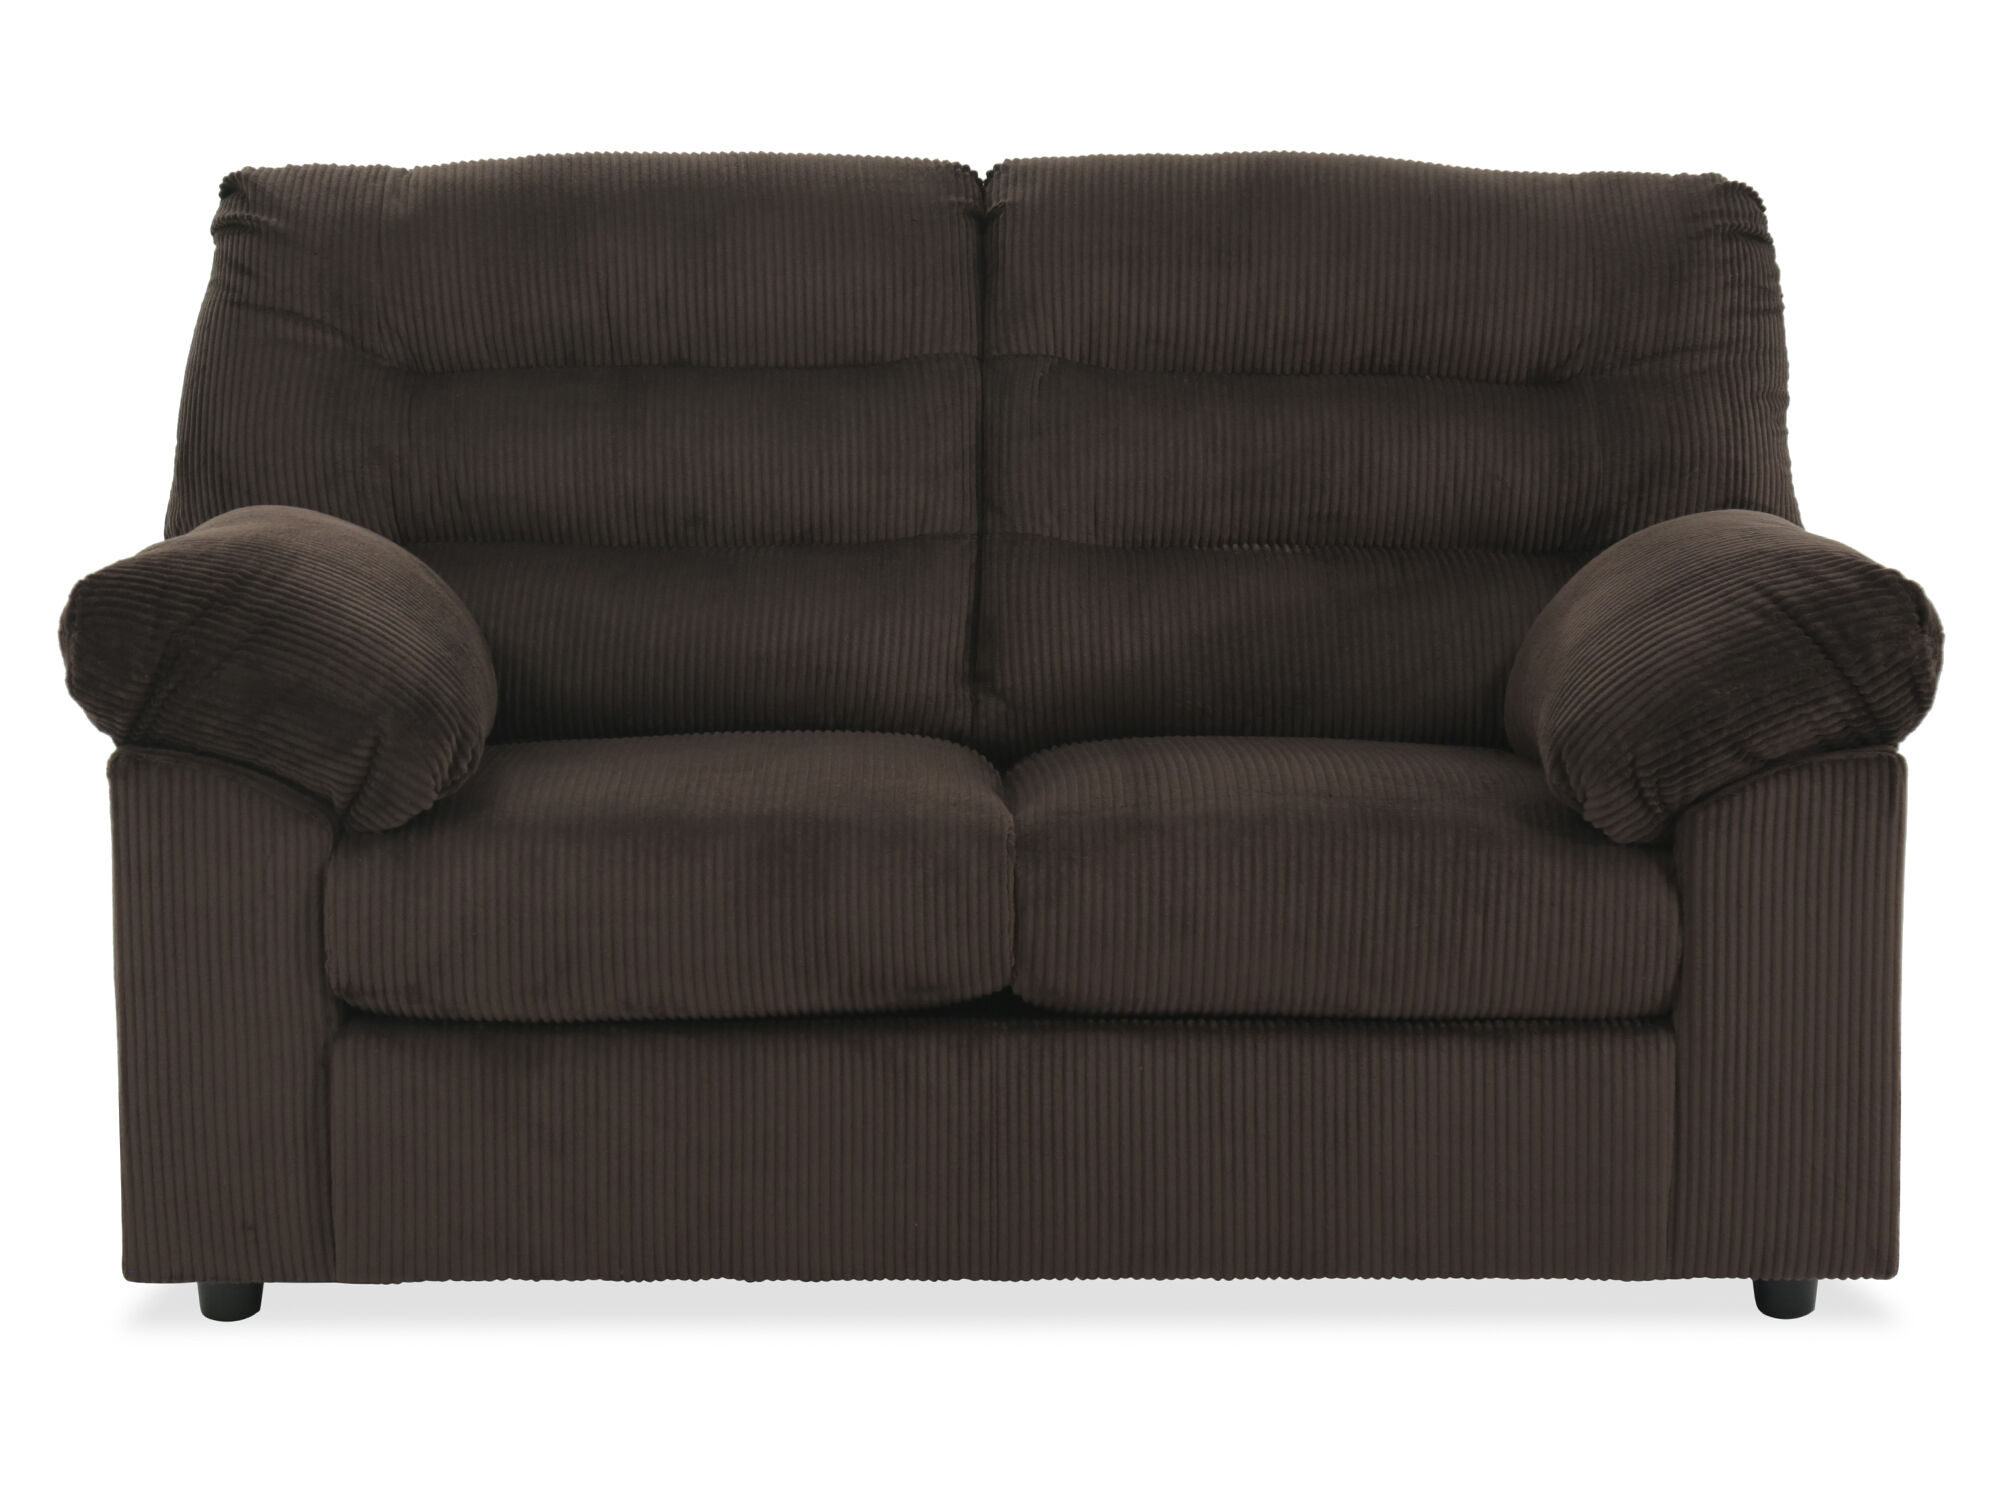 Rib Textured Contemporary 64 Quot Loveseat In Chocolate